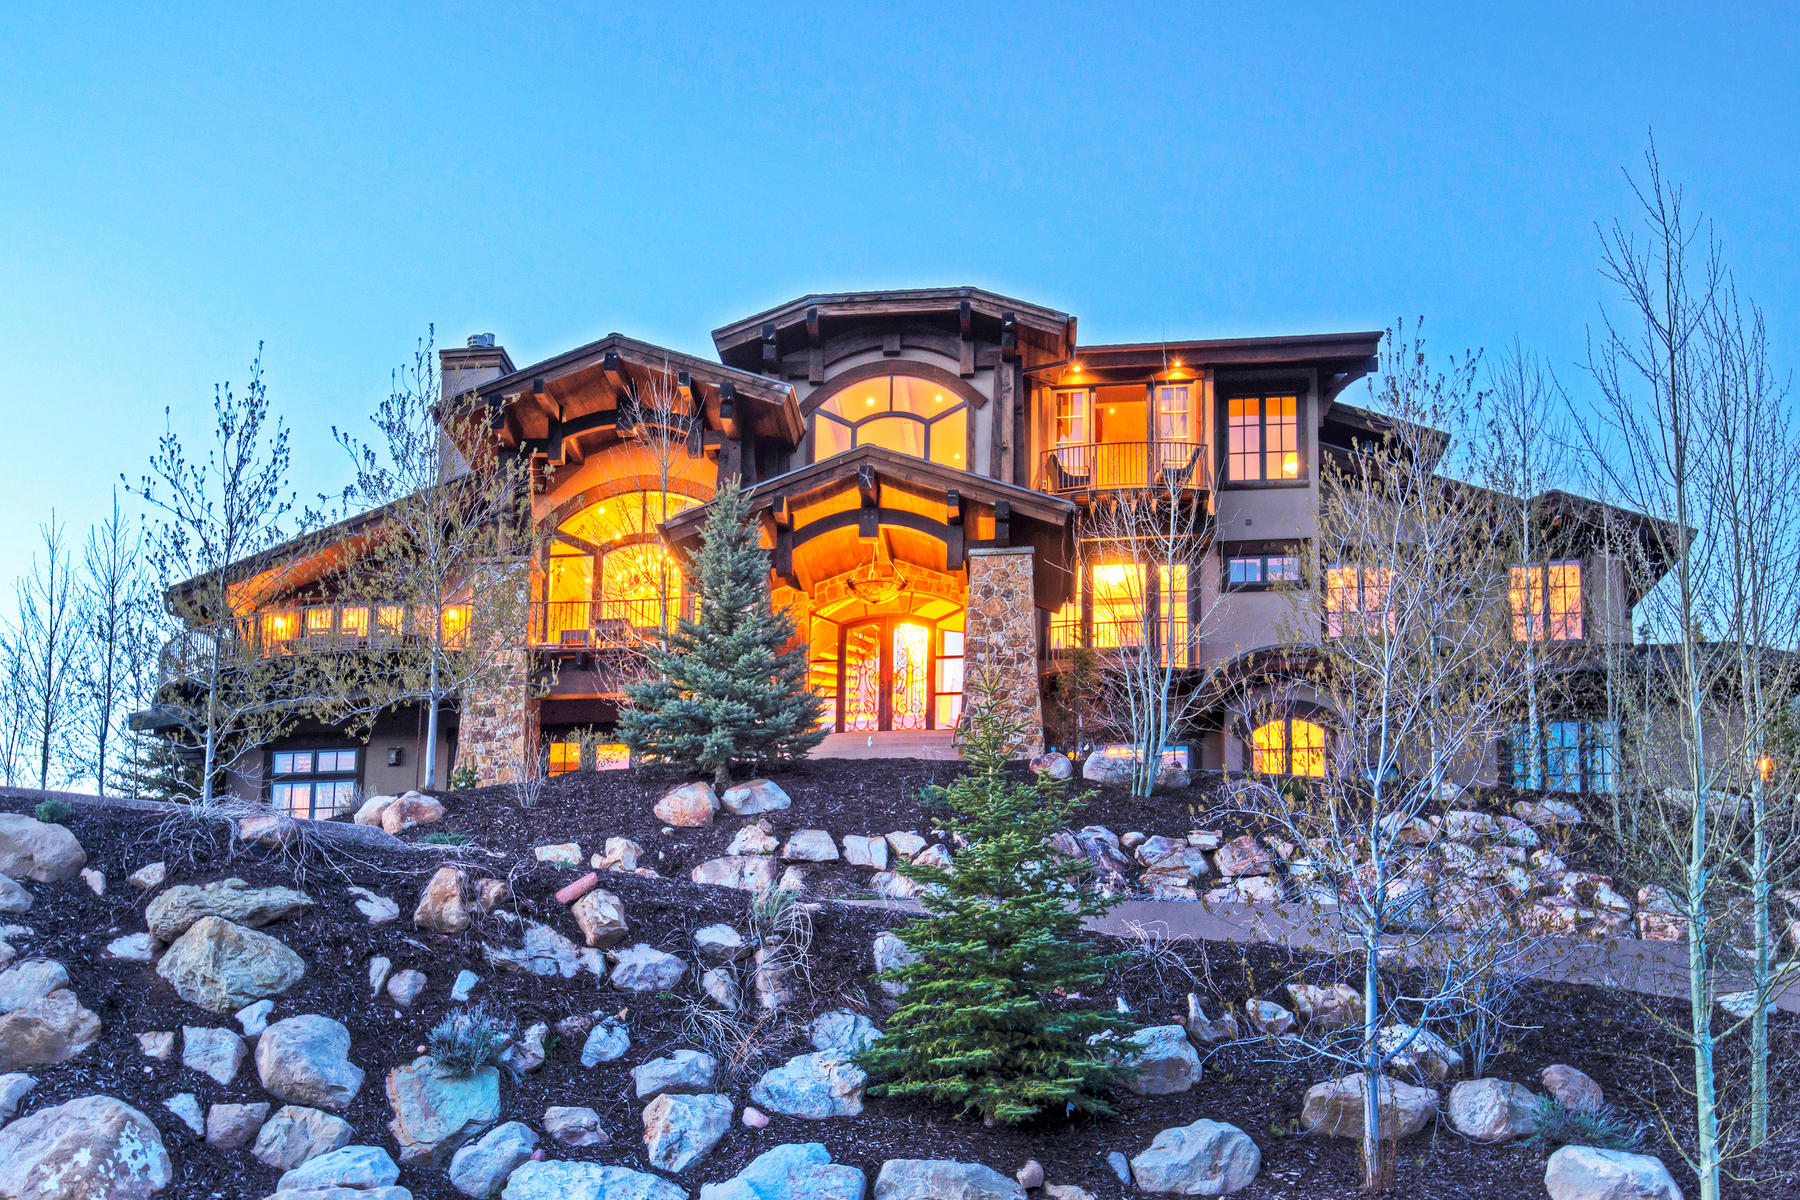 Single Family Home for Sale at Refined Elegance in the Mountains 8448 N Trails Dr Park City, Utah, 84098 United States